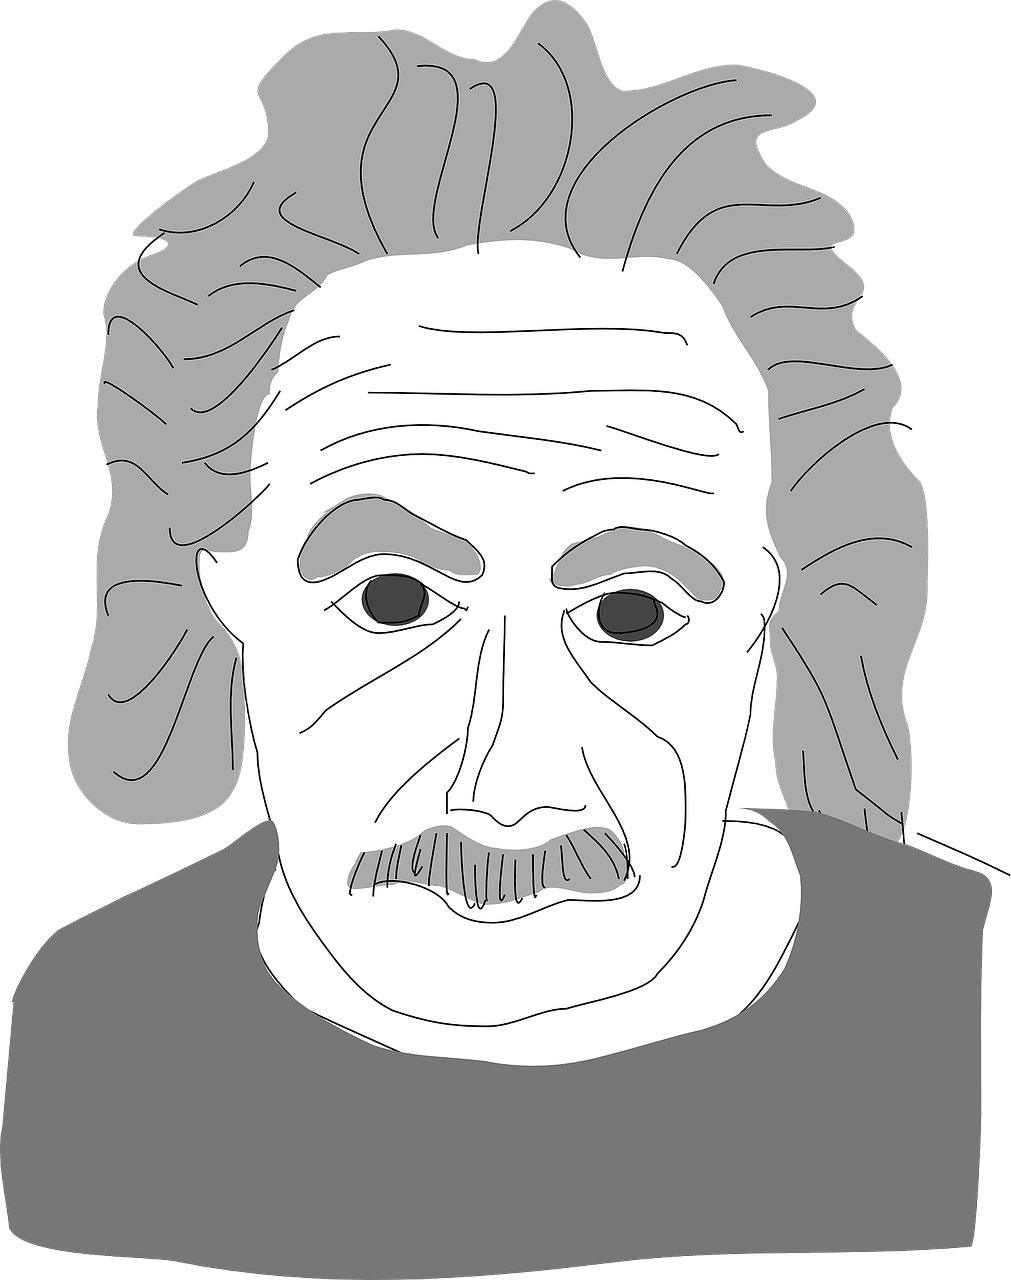 albert einstein theory of relativity scientist free photo